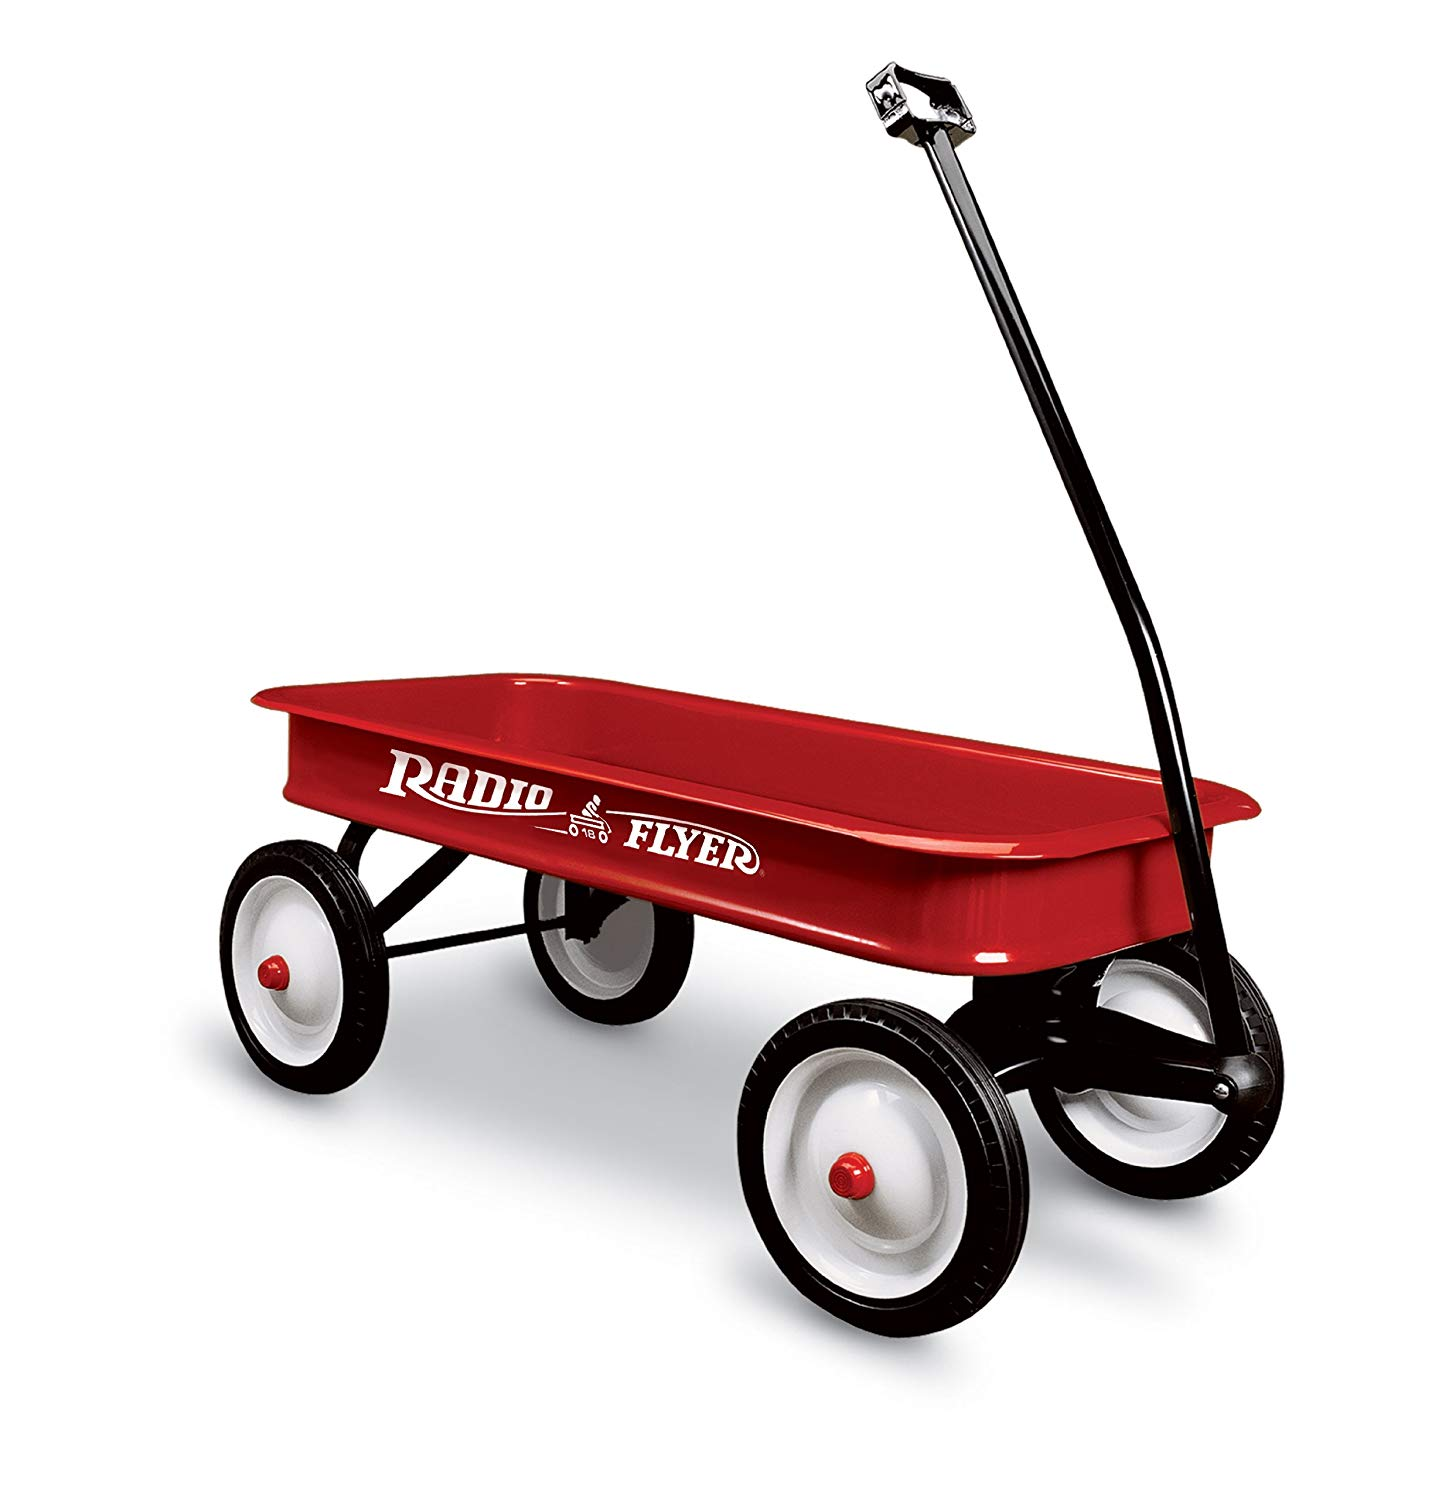 Radio Flyer Red Wagon